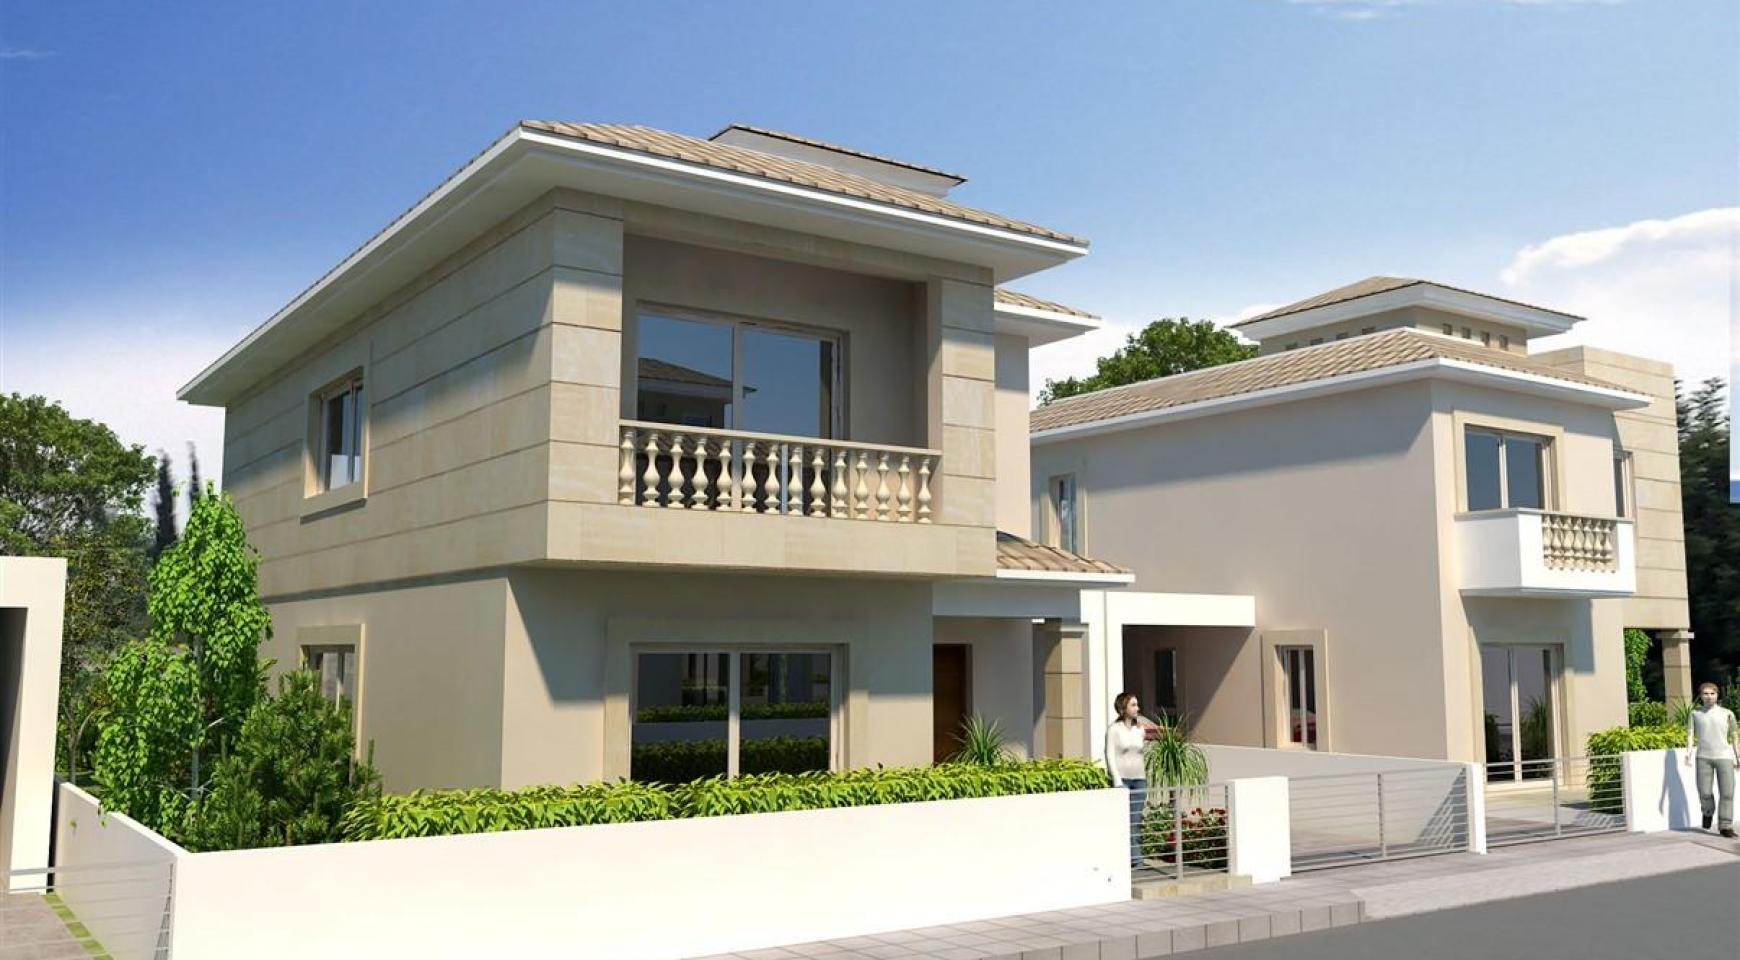 3 Bedroom Villa in a New Project - 8